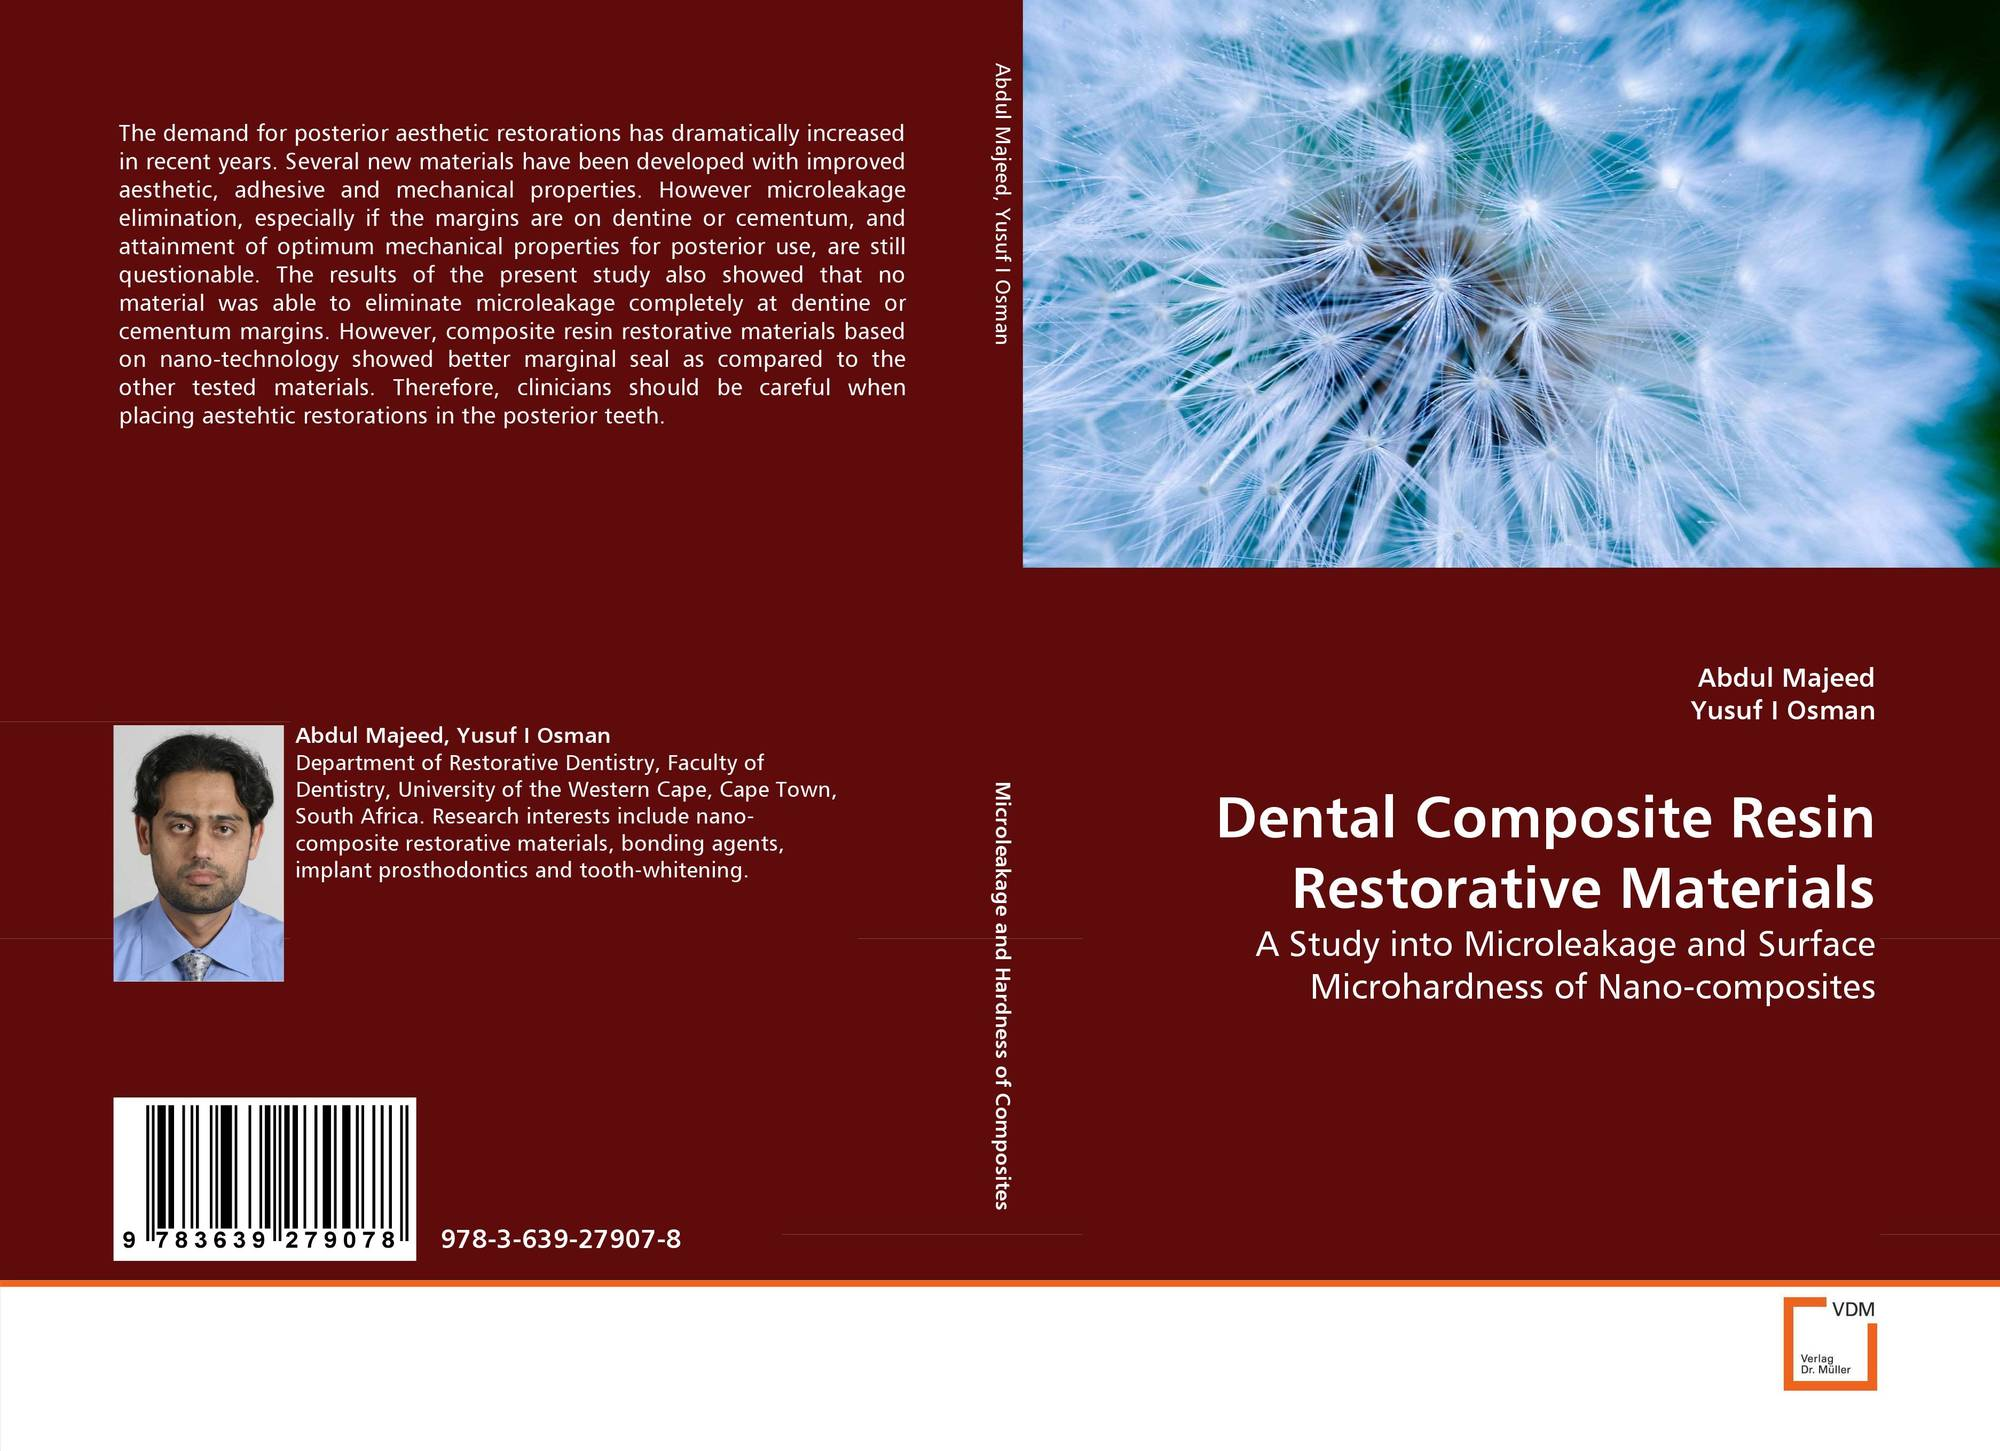 polymerization of composite resins dental chemistry essay Abstract dijken van j w v, conventional, microfilled and hybrid composite resins: laboratory and clinical evaluations abstract no 30 — issn 0345-7532.